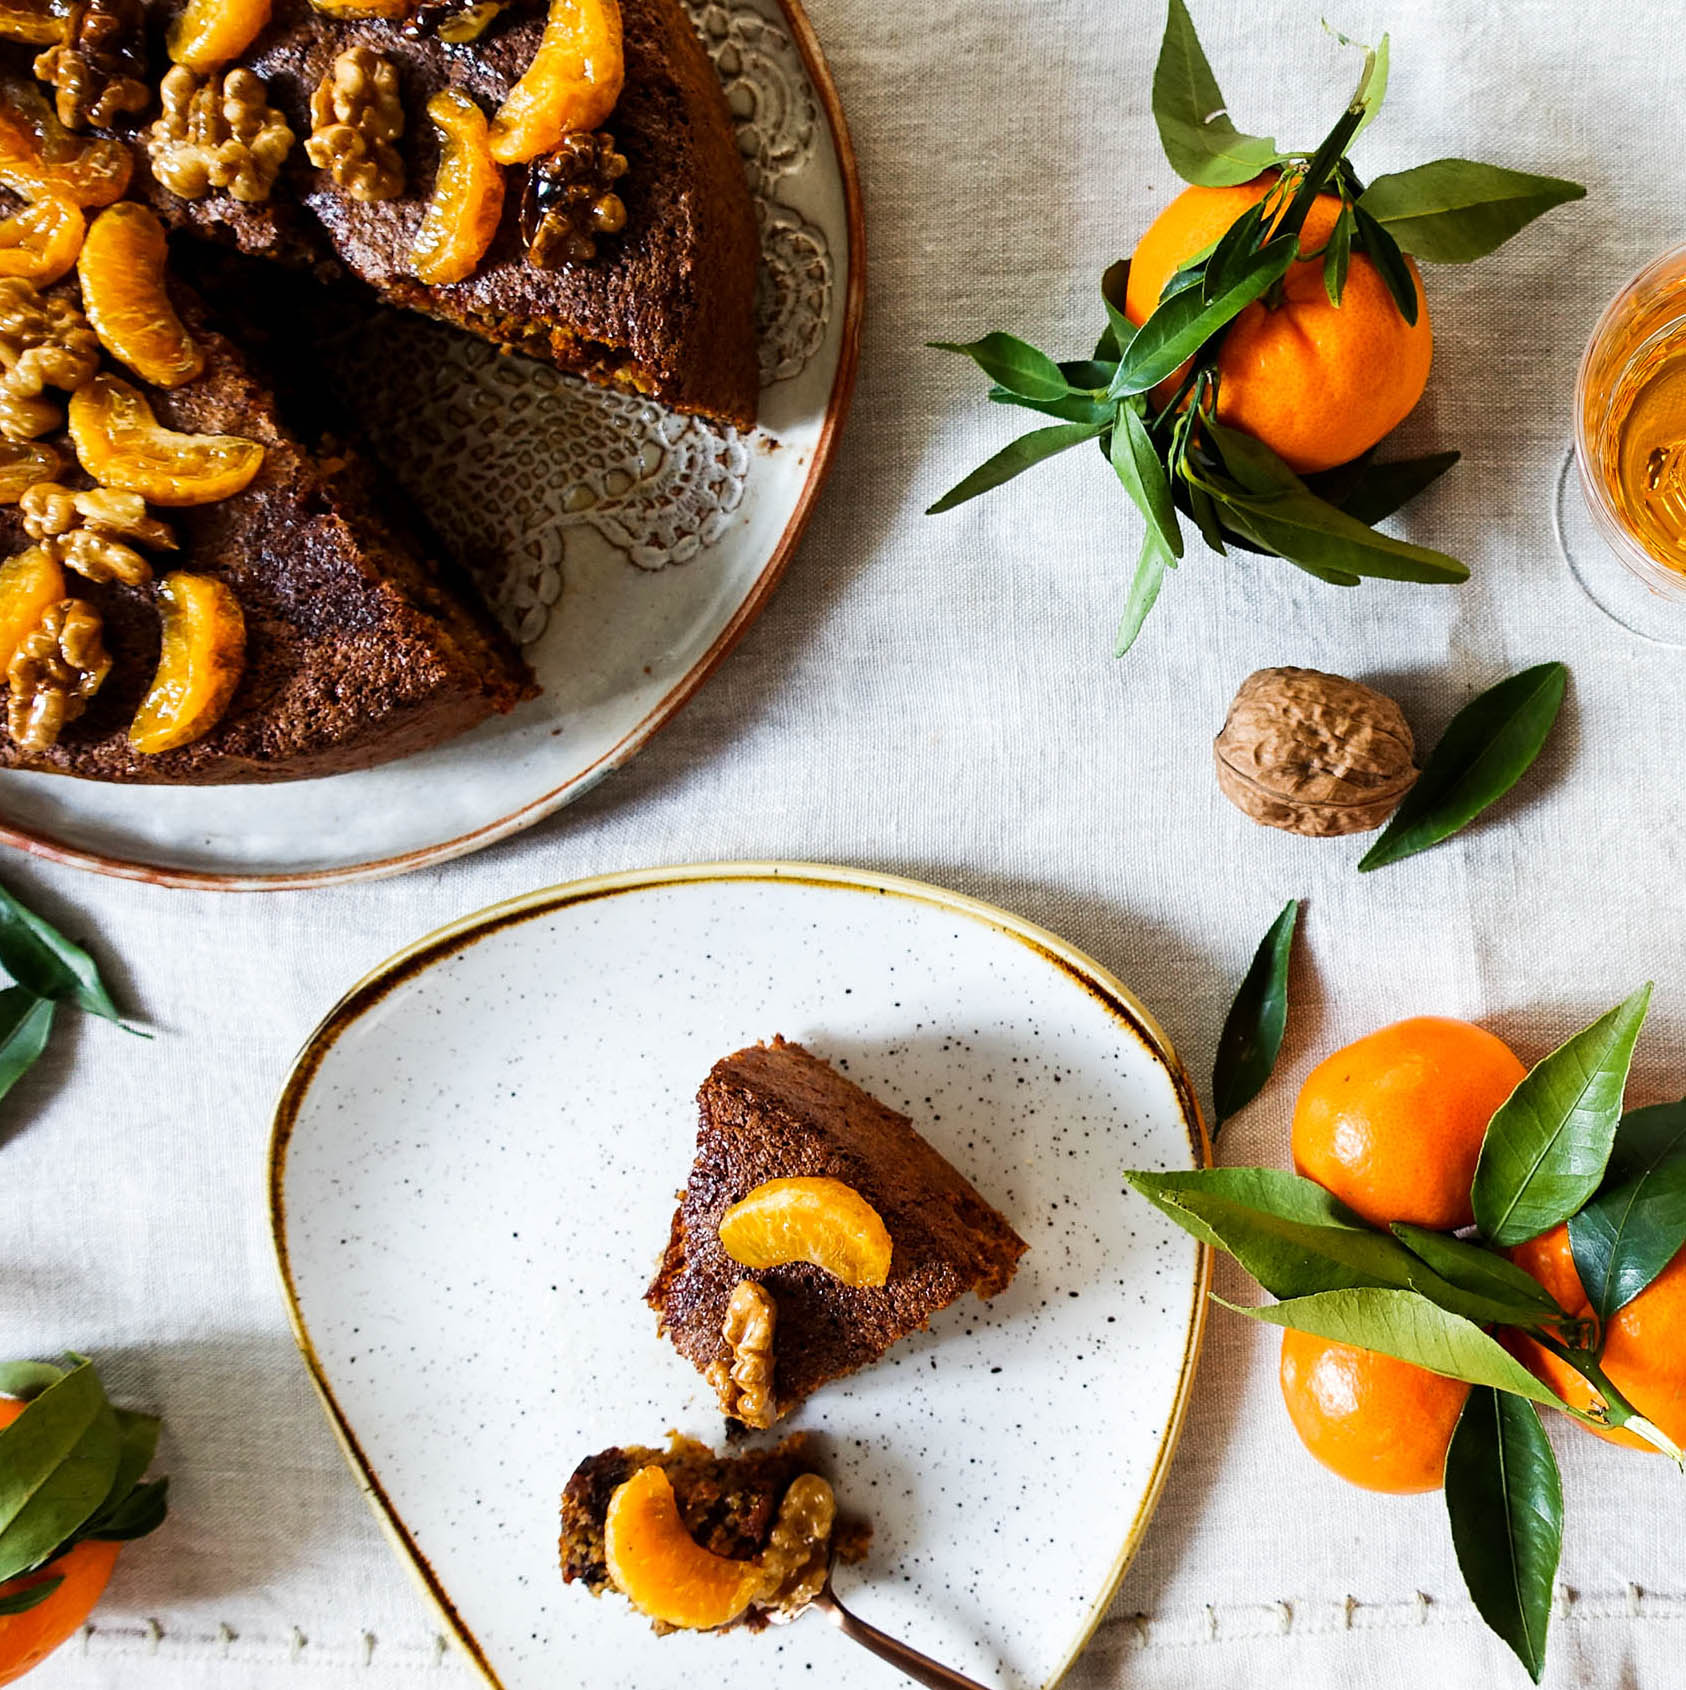 foodgawker-tangerine flourless cake-walnuts chocolate-italy on my mind